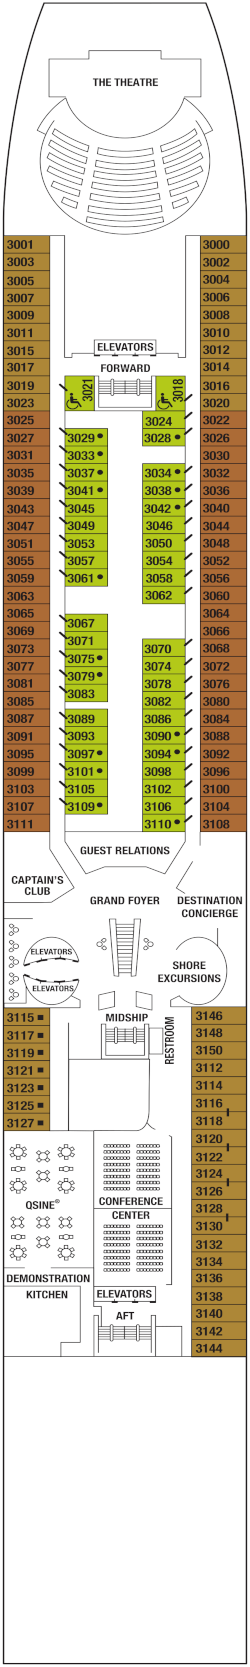 Celebrity Constellation Deck 3 Deck Plan